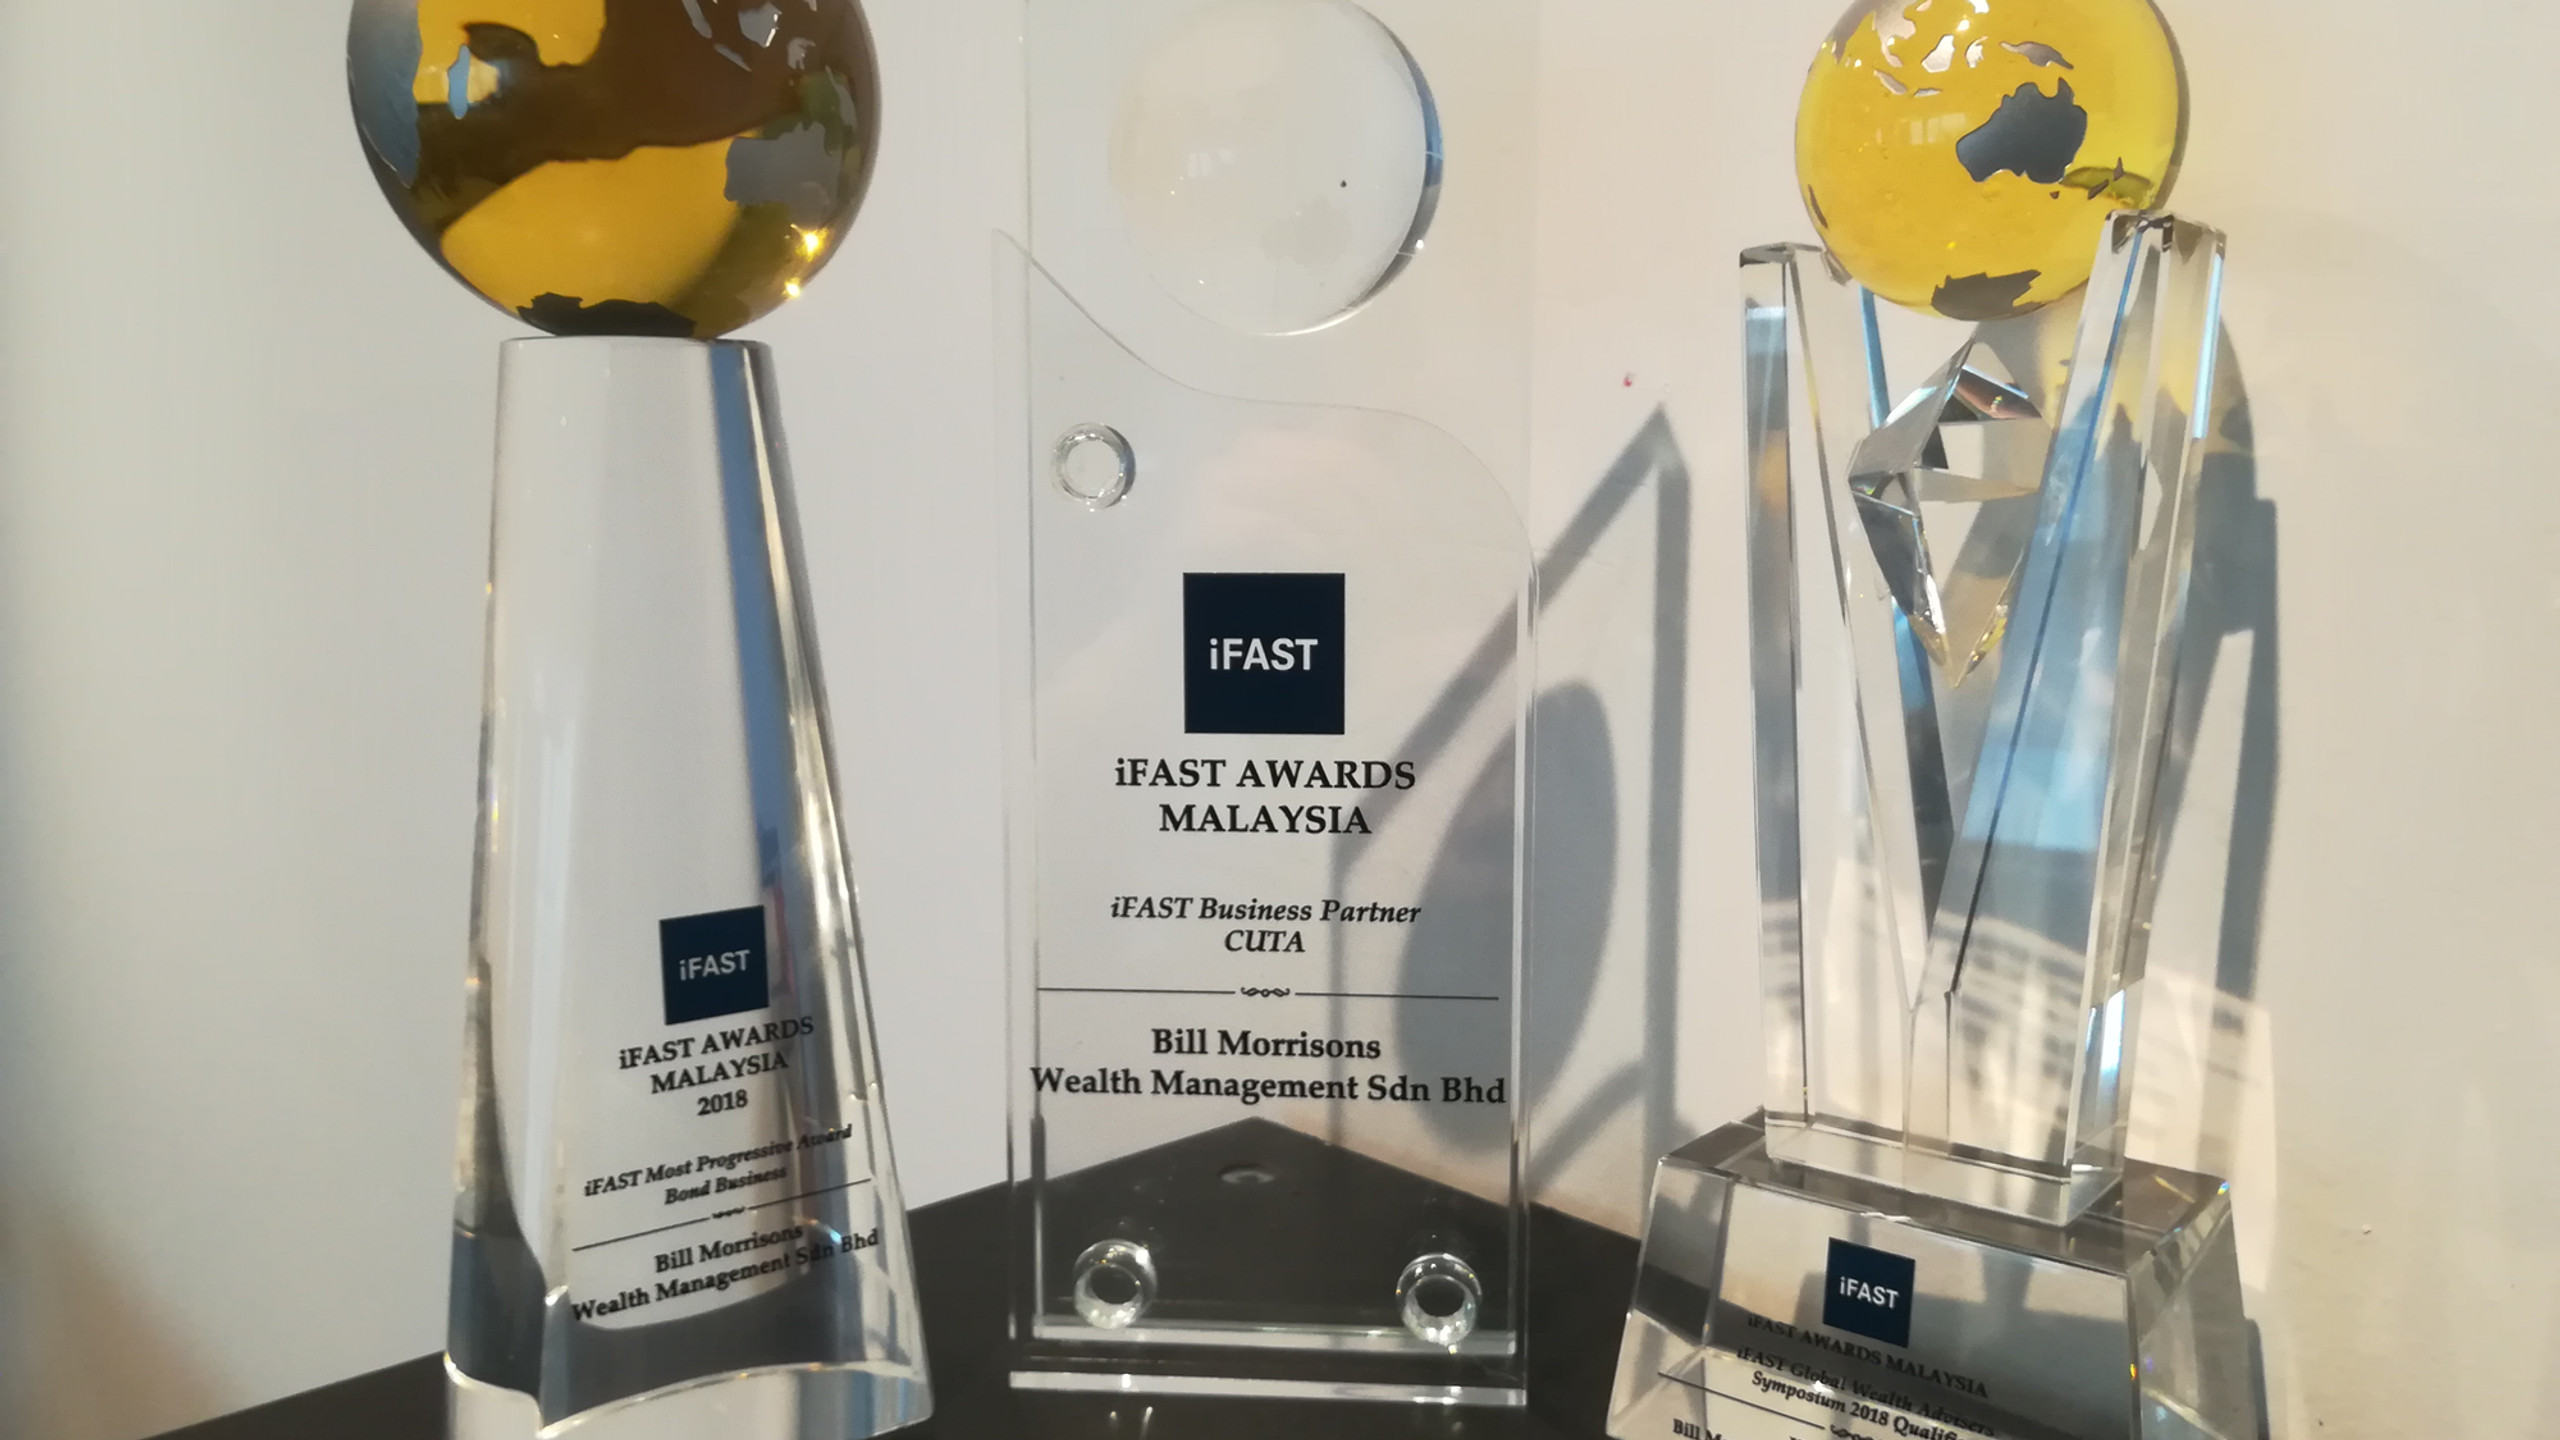 The Awards by iFast